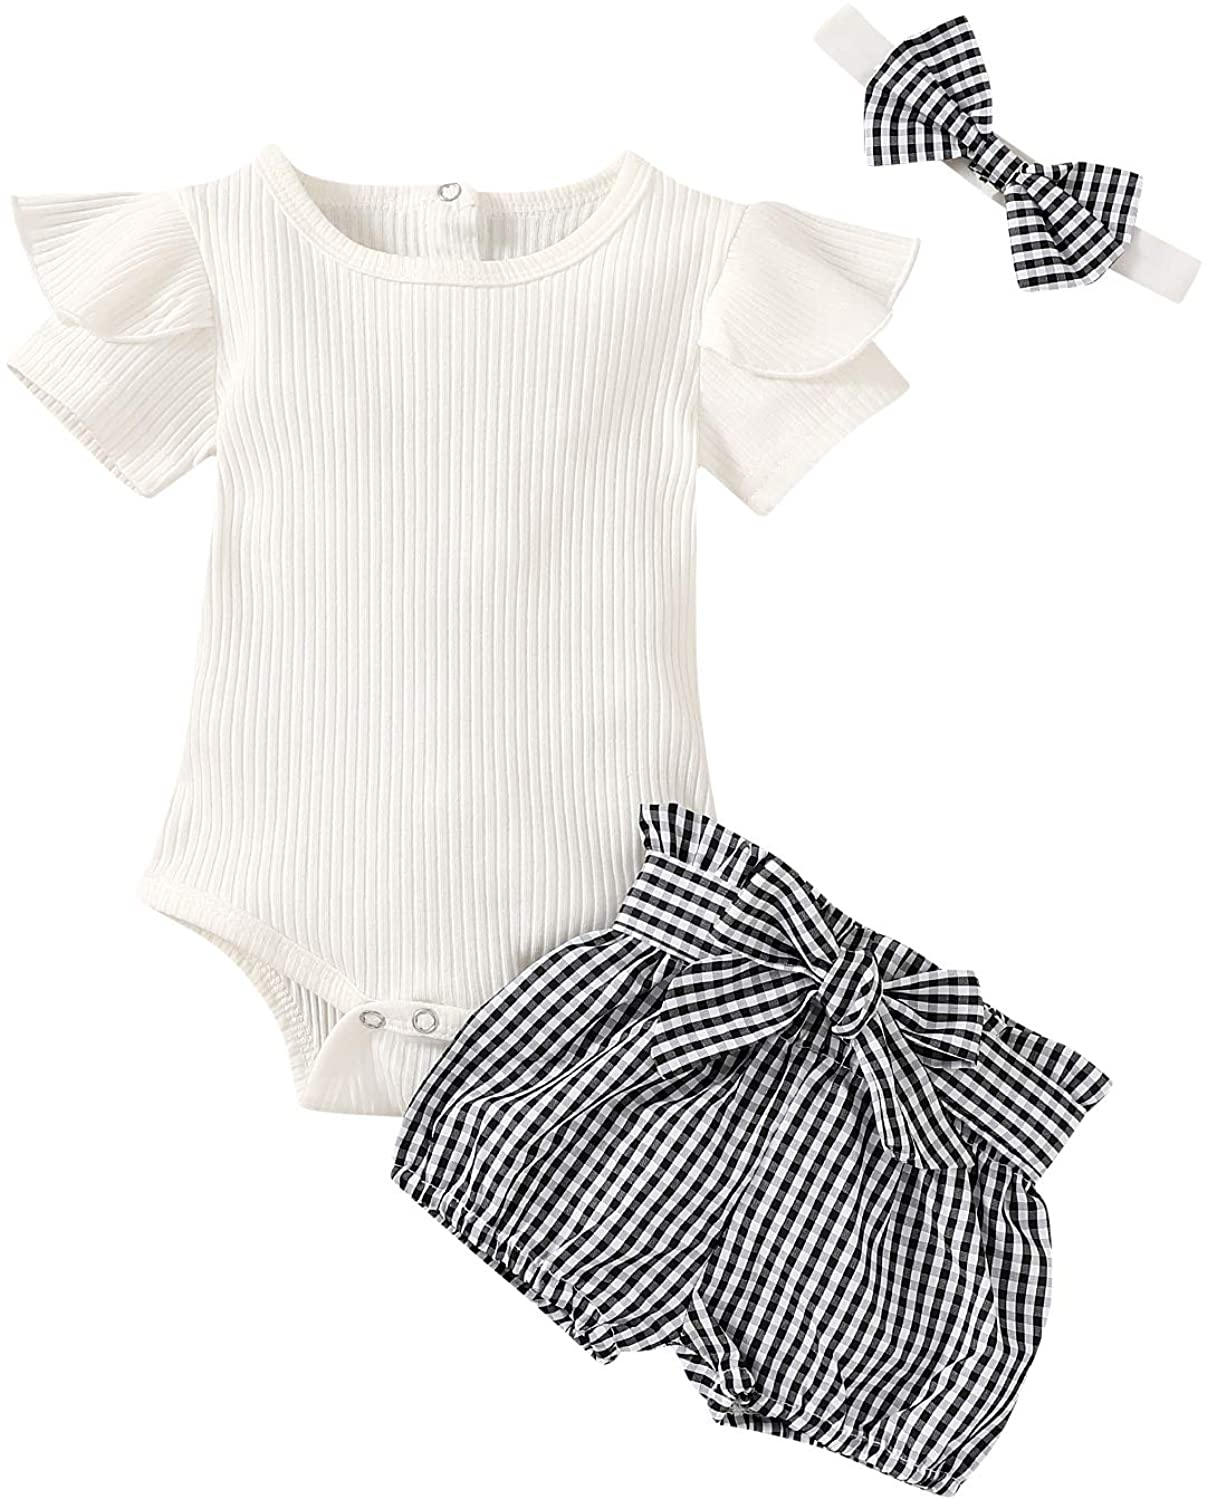 Newborn Infant Baby Girl Summer Outfits Set Short Sleeve Romper and Plaid Shorts with Bowknot